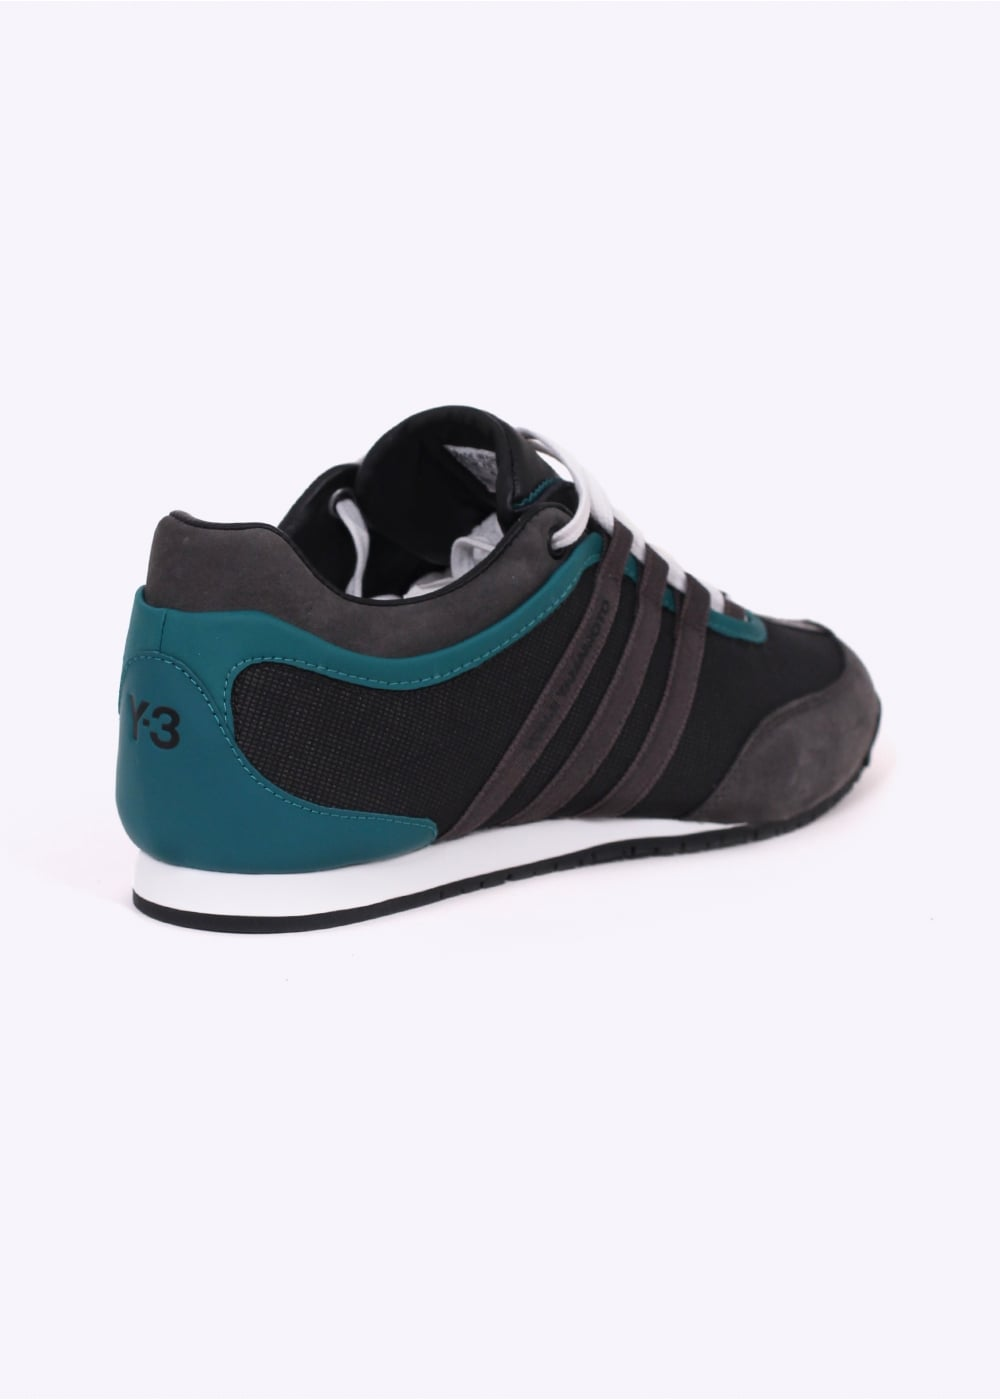 new arrival 5d560 8ea60 Boxing Trainers - Charcoal   Real Teal